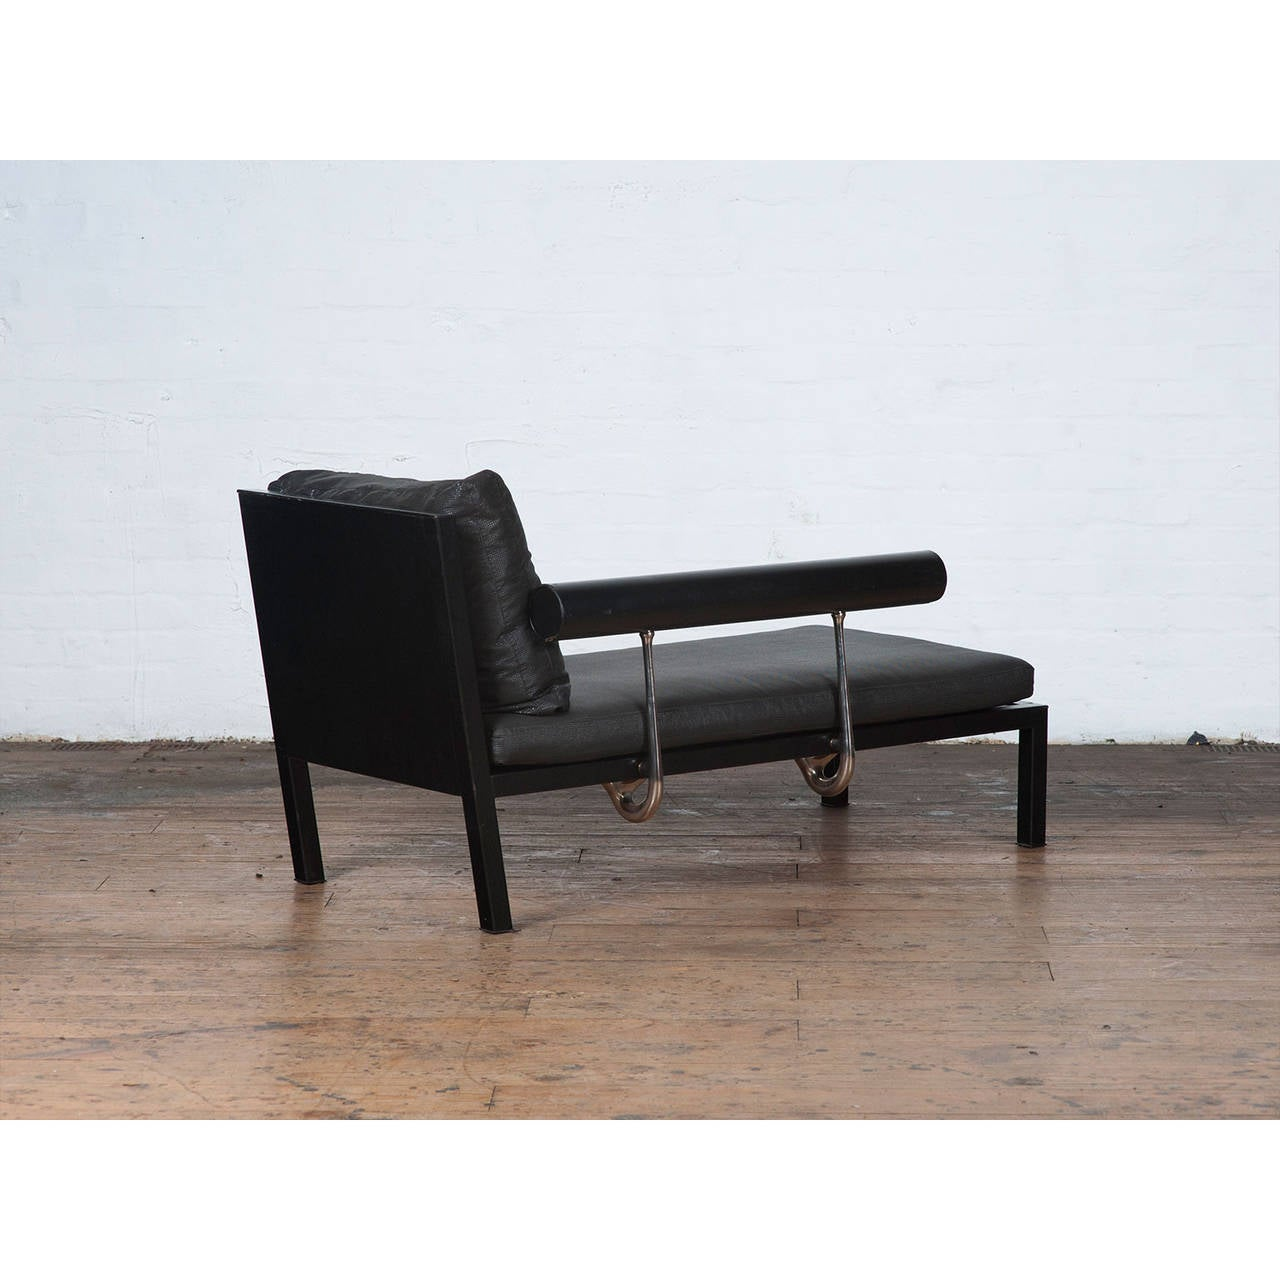 1980s black leather chaise longue by antonio citterio for for Chaise longue black